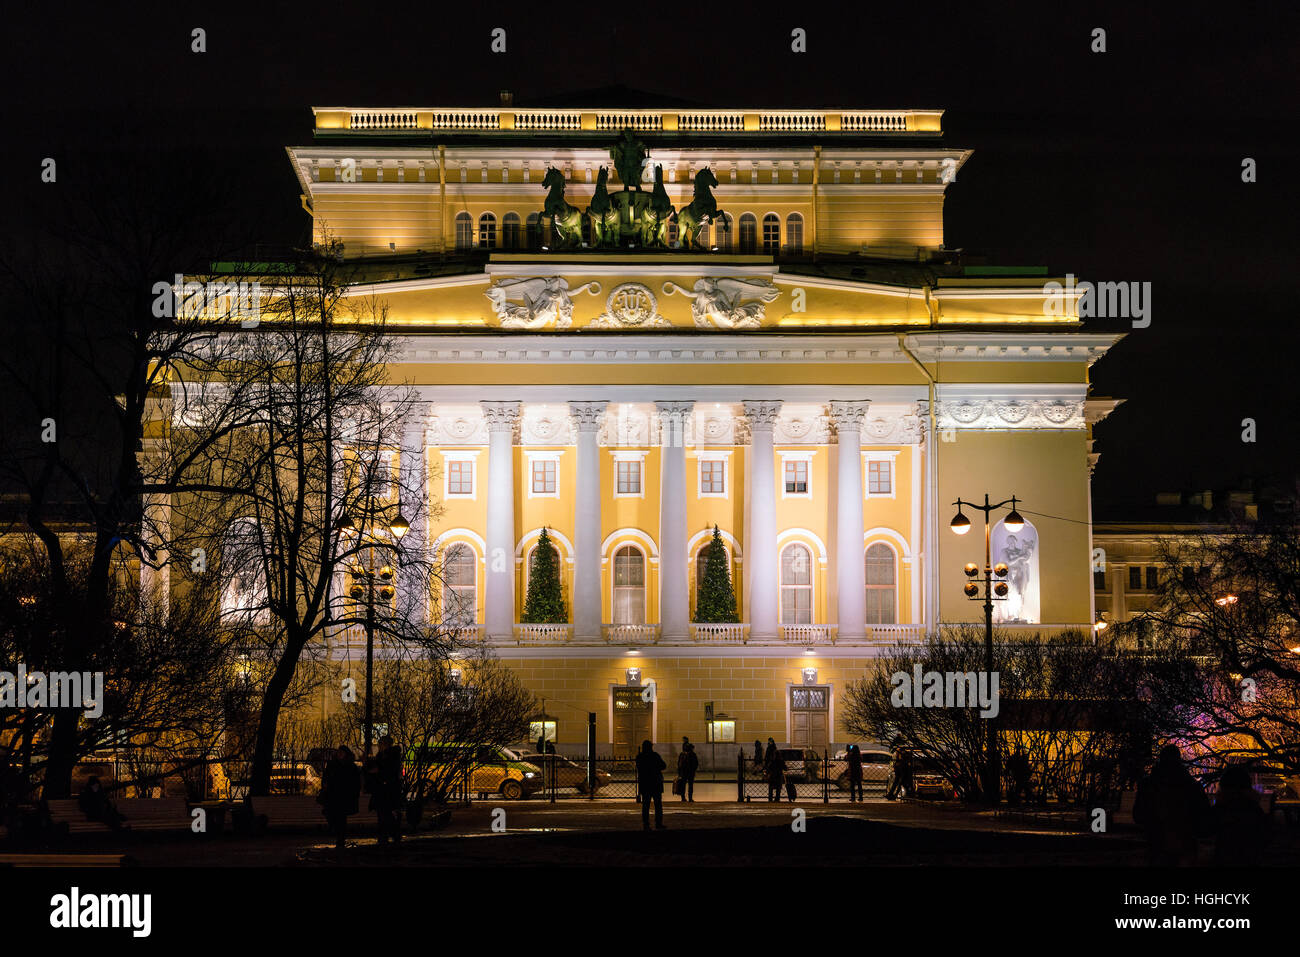 The Alexandrinsky Theatre or Russian State Pushkin Academy Drama Theater at night, Saint Petersburg, Russia - Stock Image